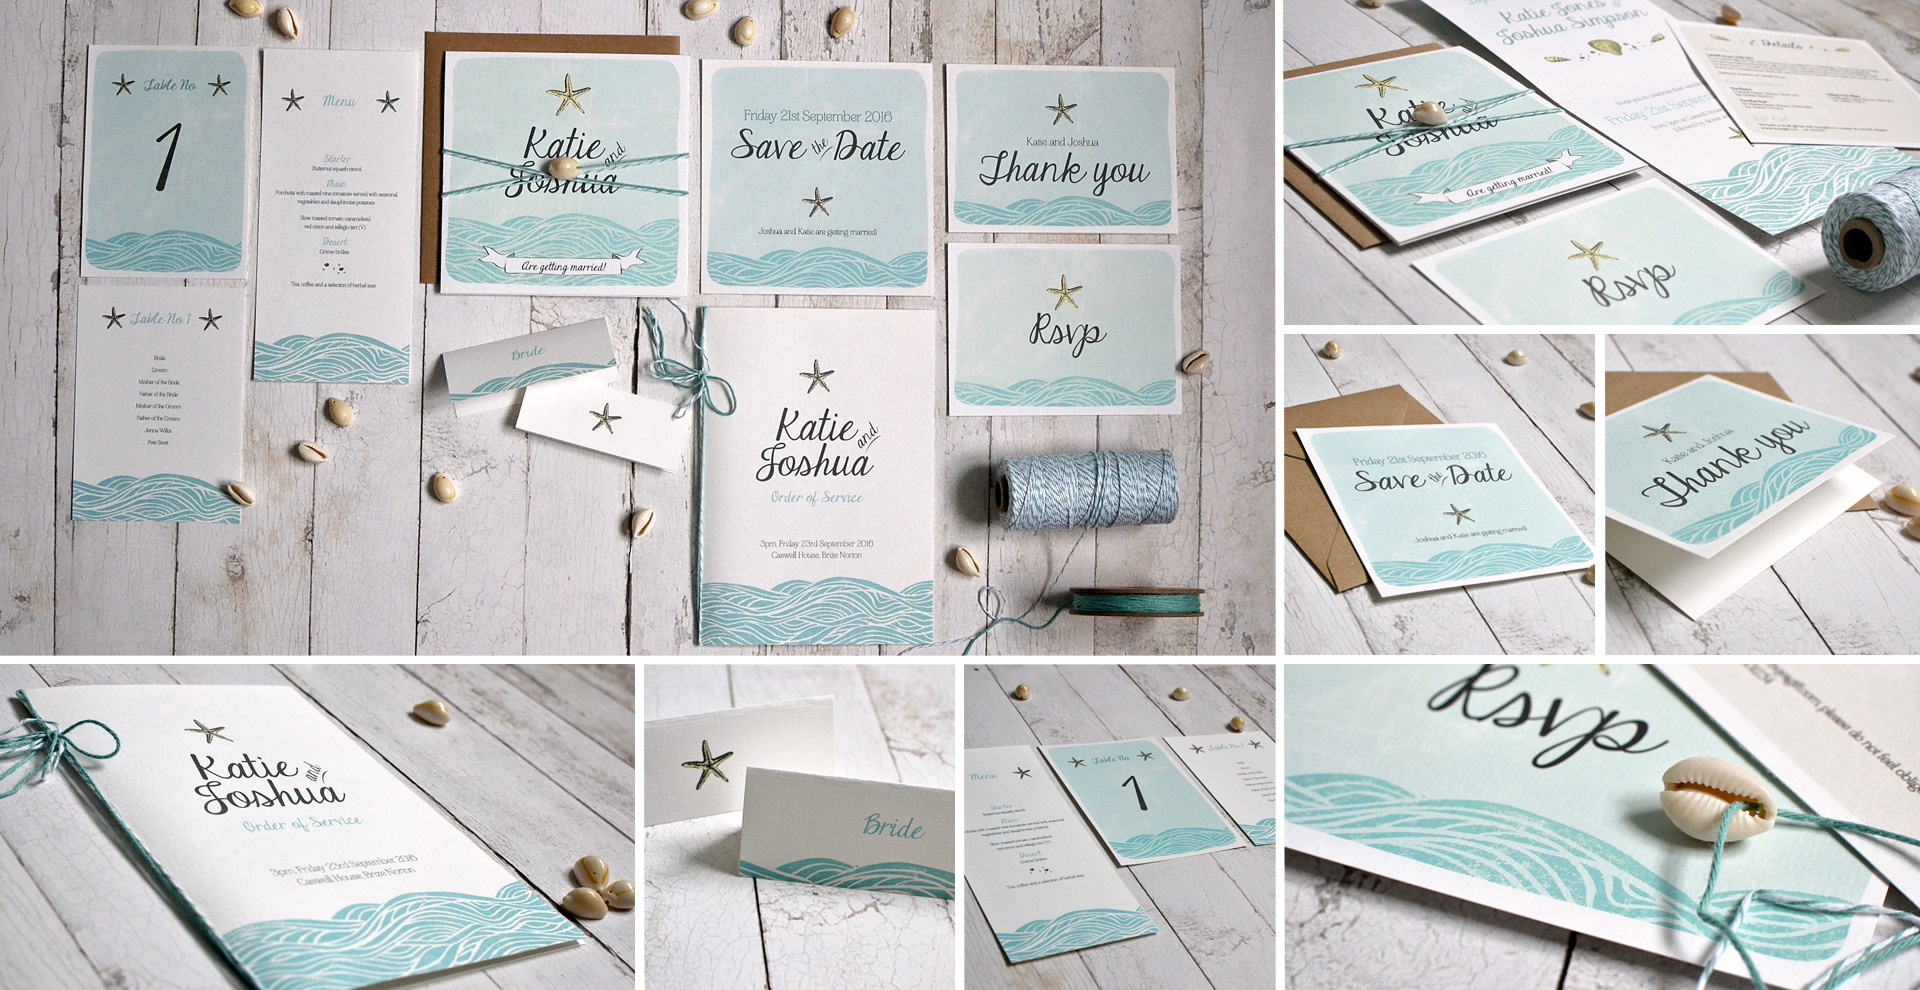 Beach wedding invitation and stationery